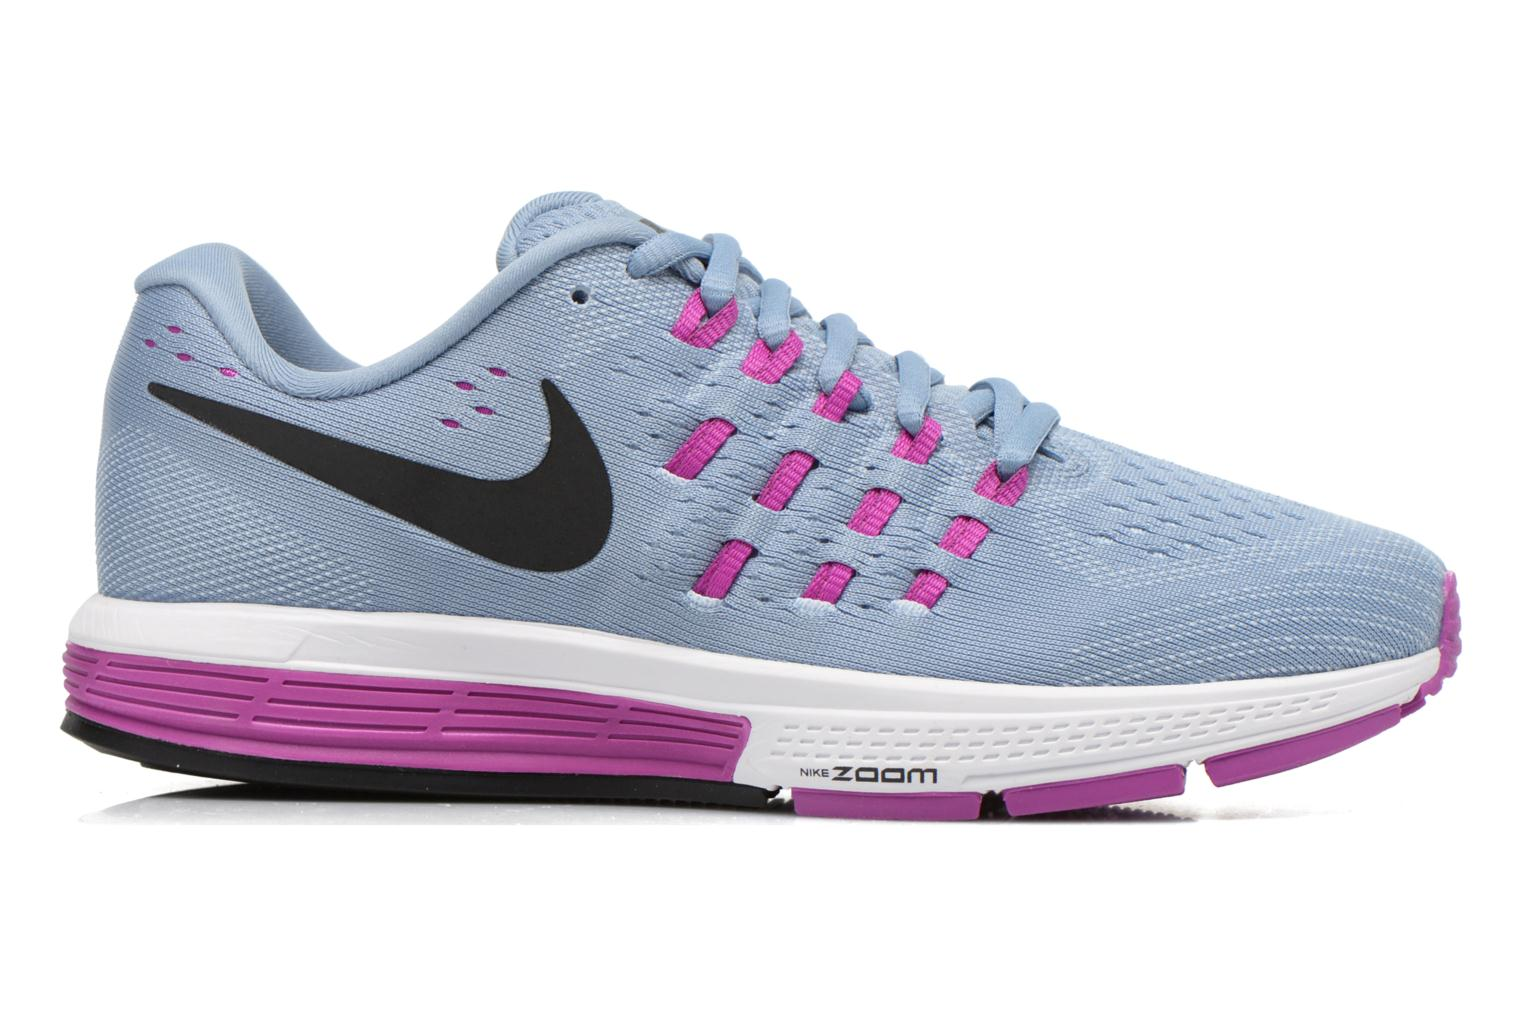 Wmns Nike Air Zoom Vomero 11 Blue Grey/Blk-Hypr Vlt-Bl Tnt